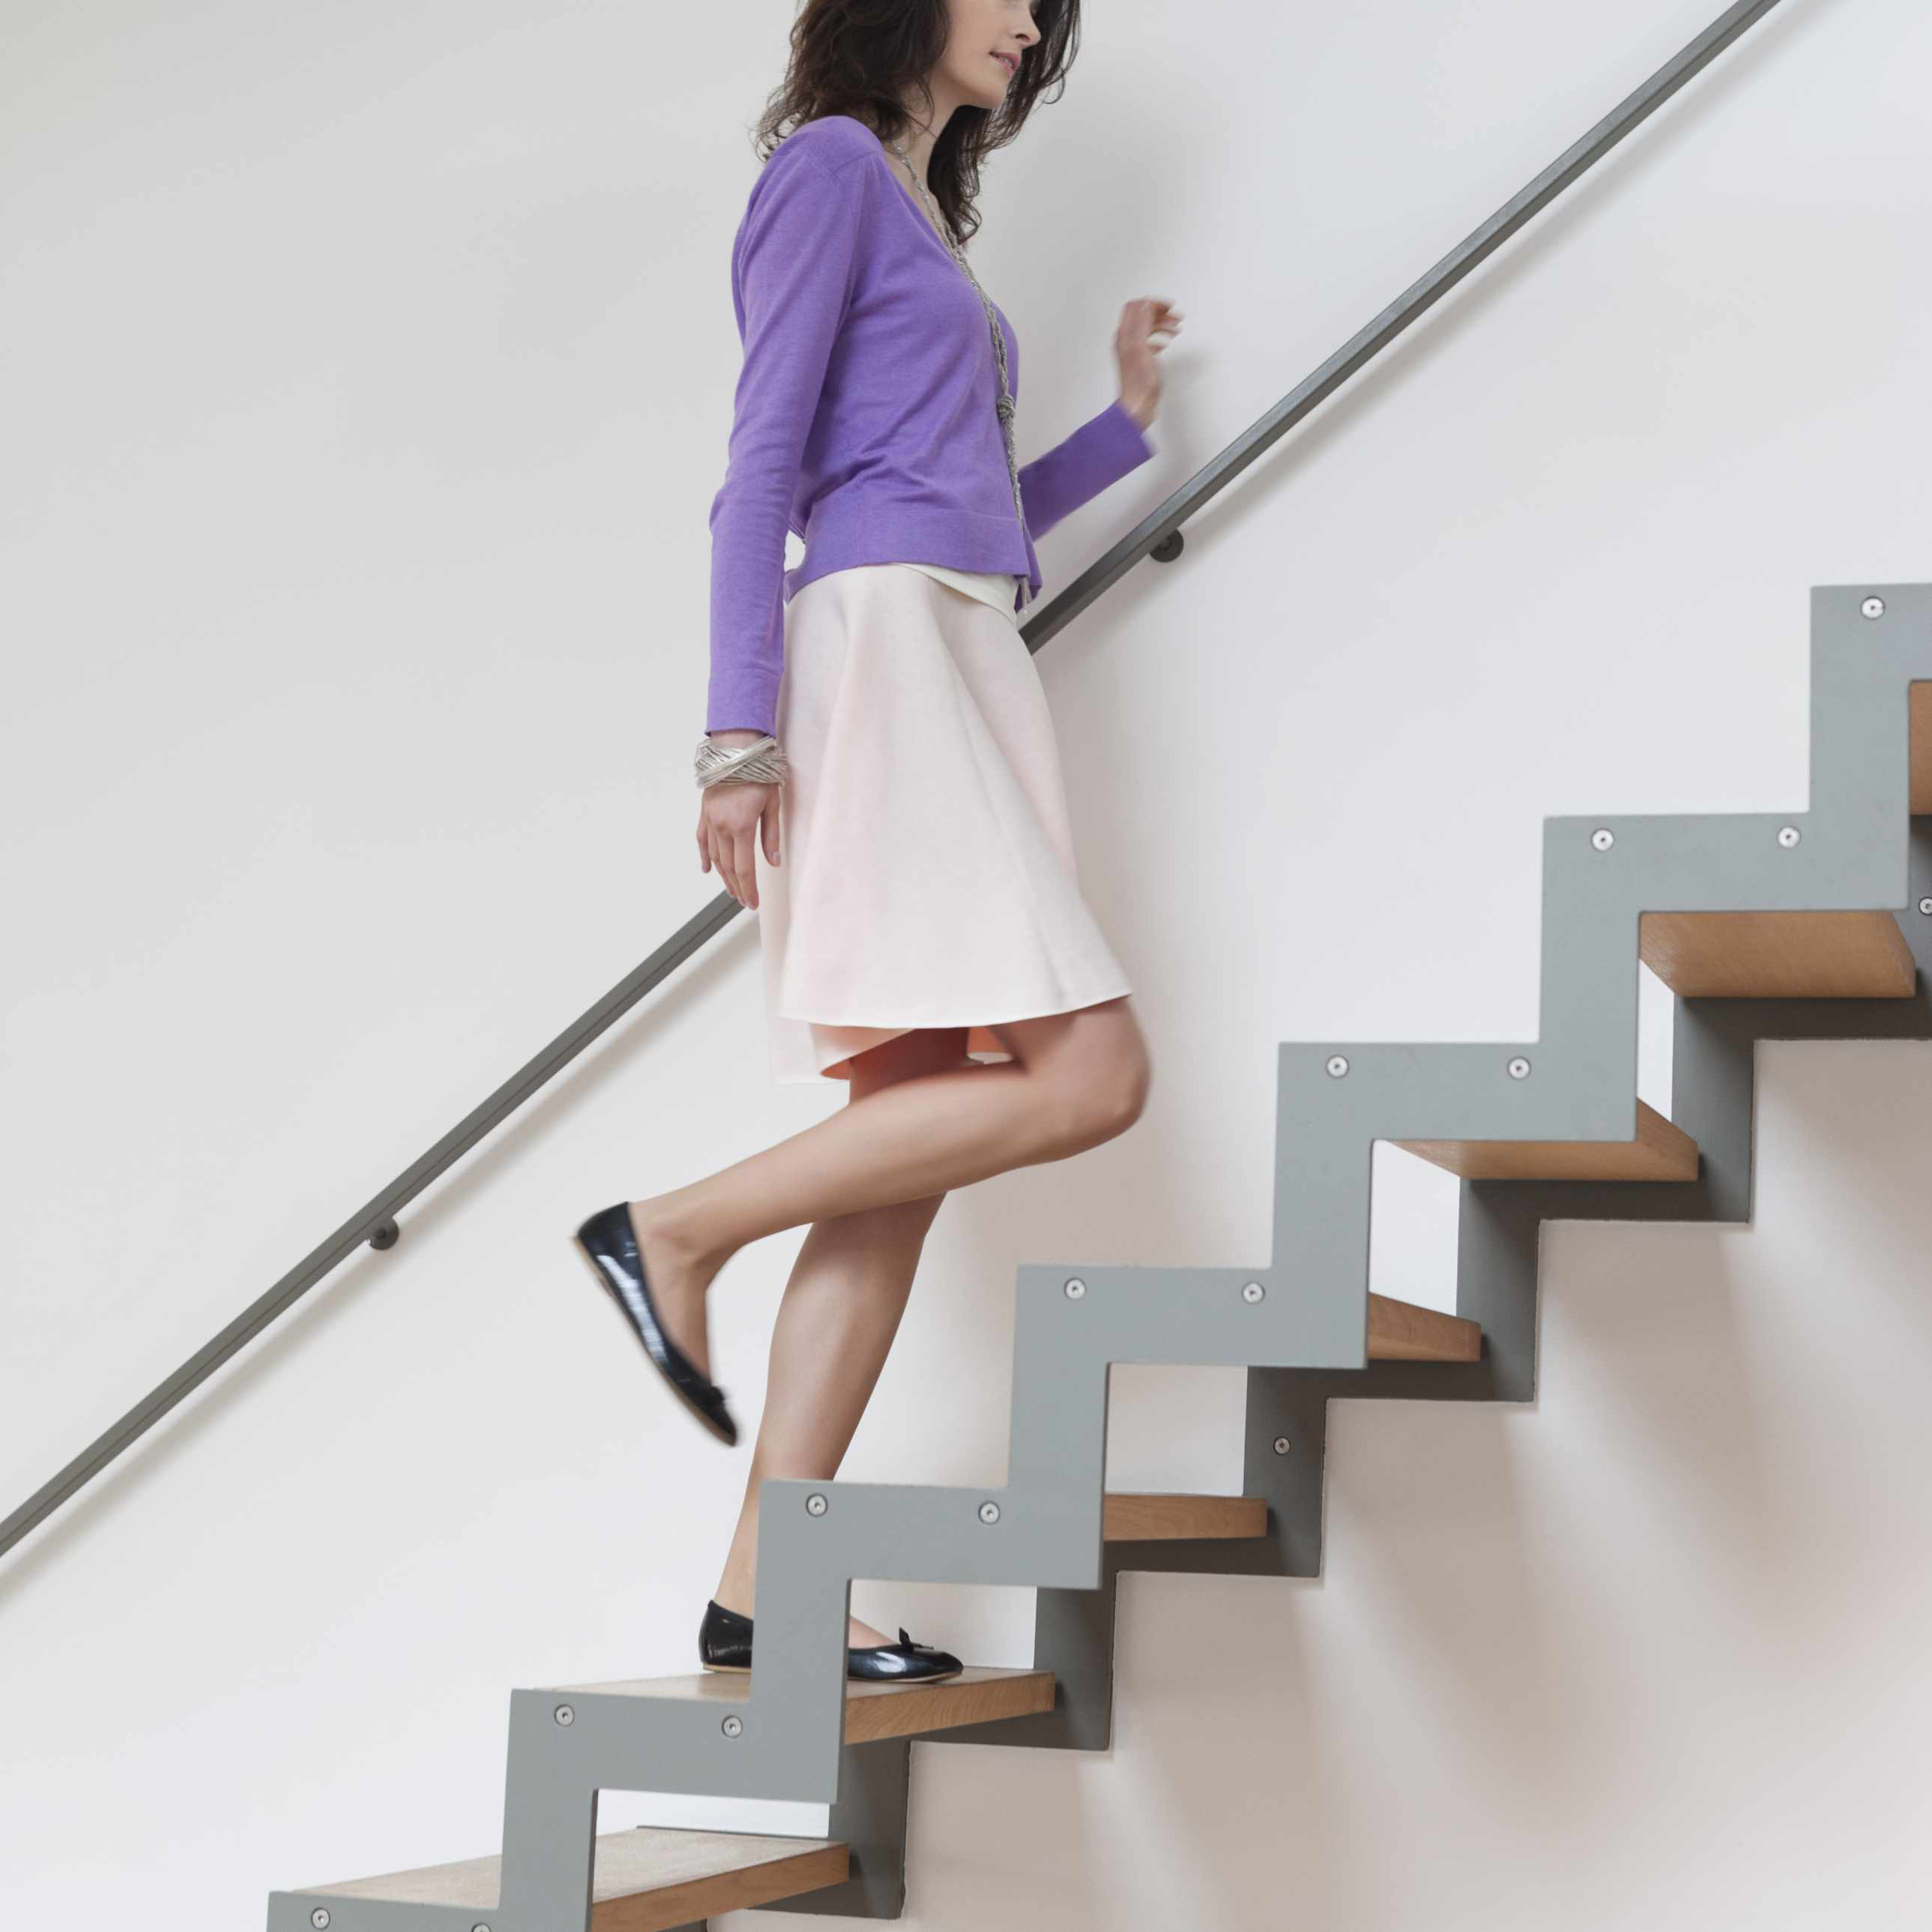 Woman-moving-up-stairs-ONOKY-Fabrice-LEROUGE-Brand-X-Pictures.jpg